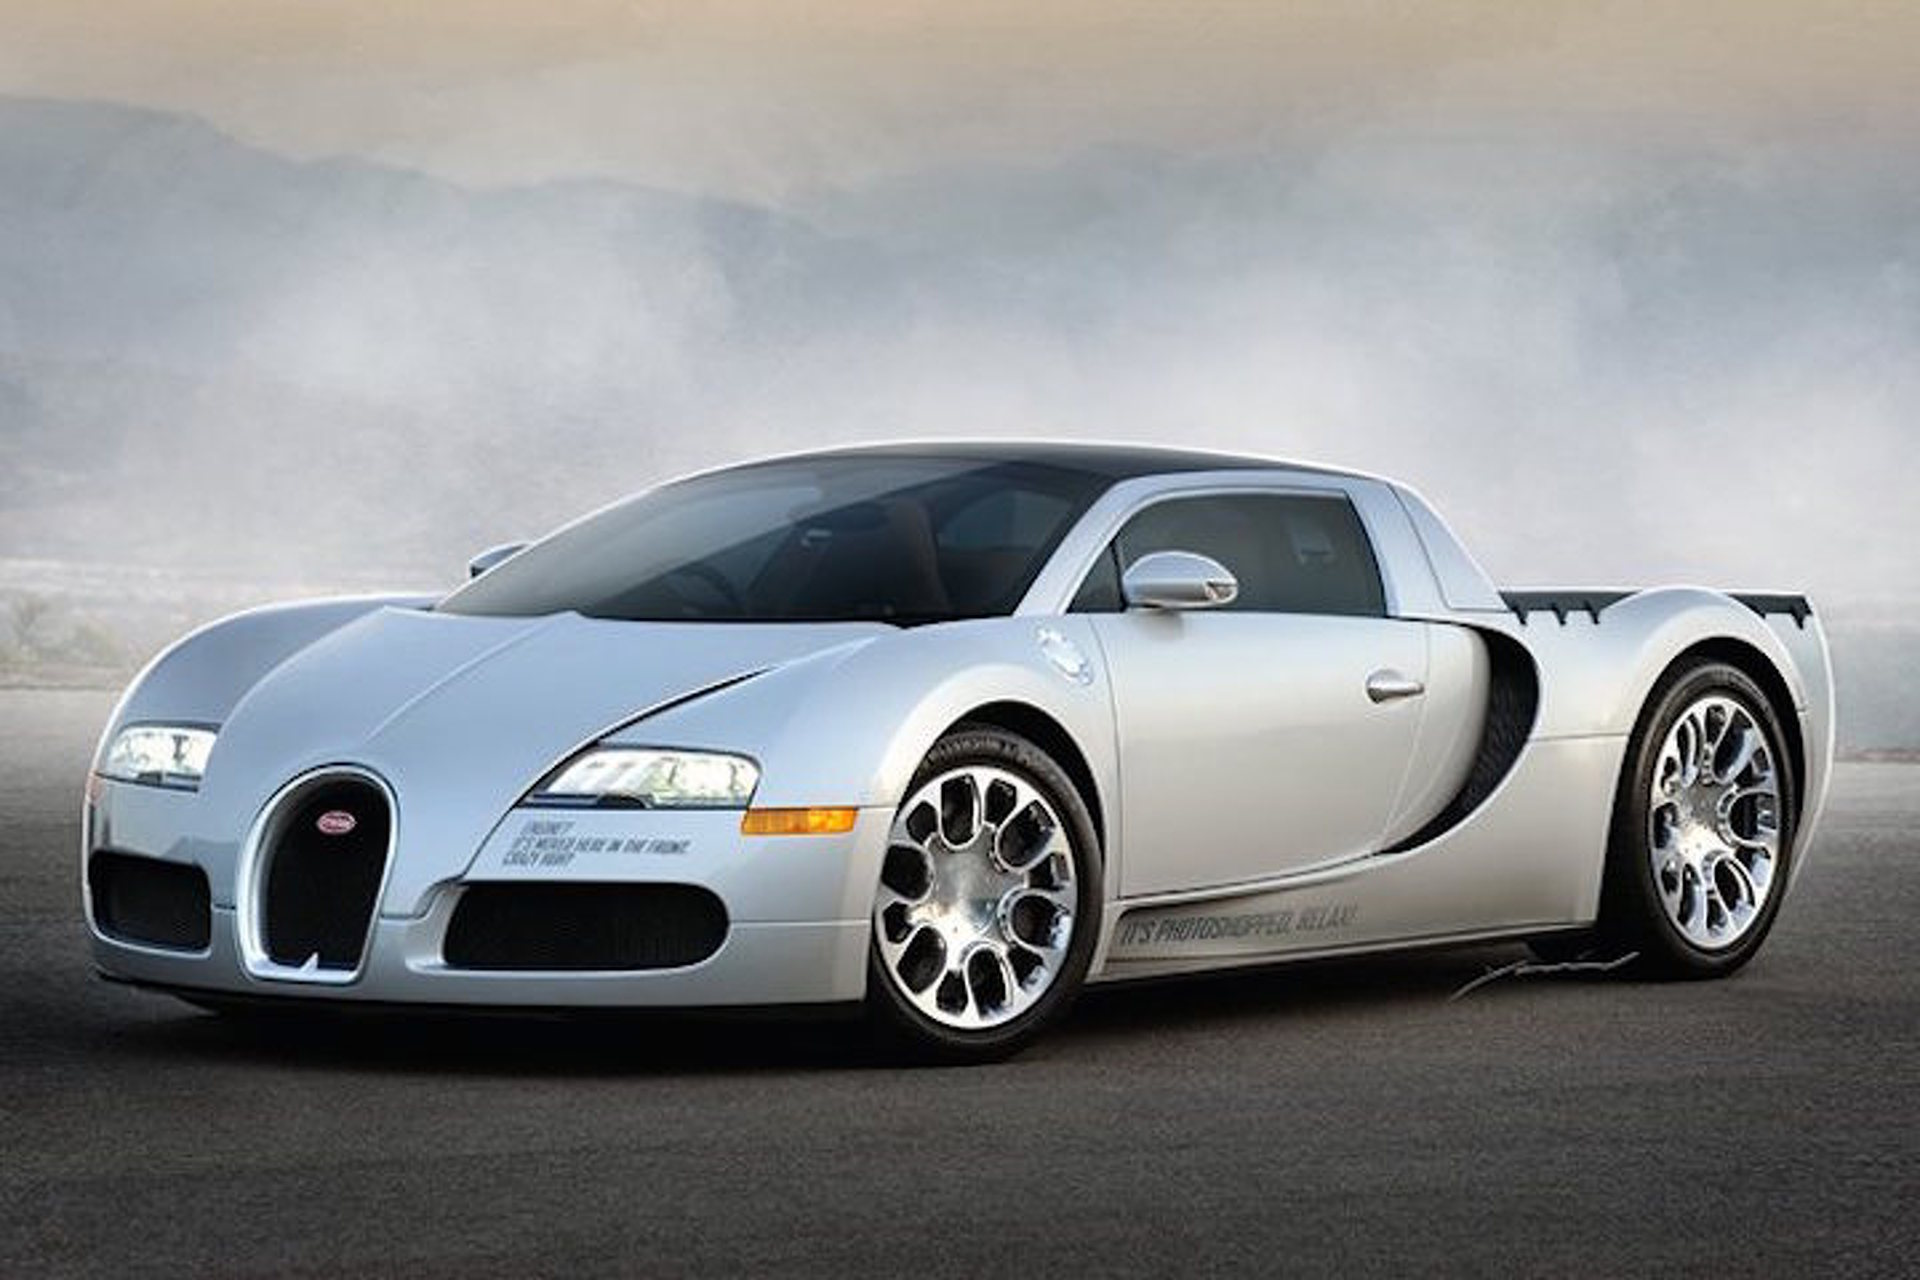 Imagine If the Bugatti Veyron Were a Pickup Truck